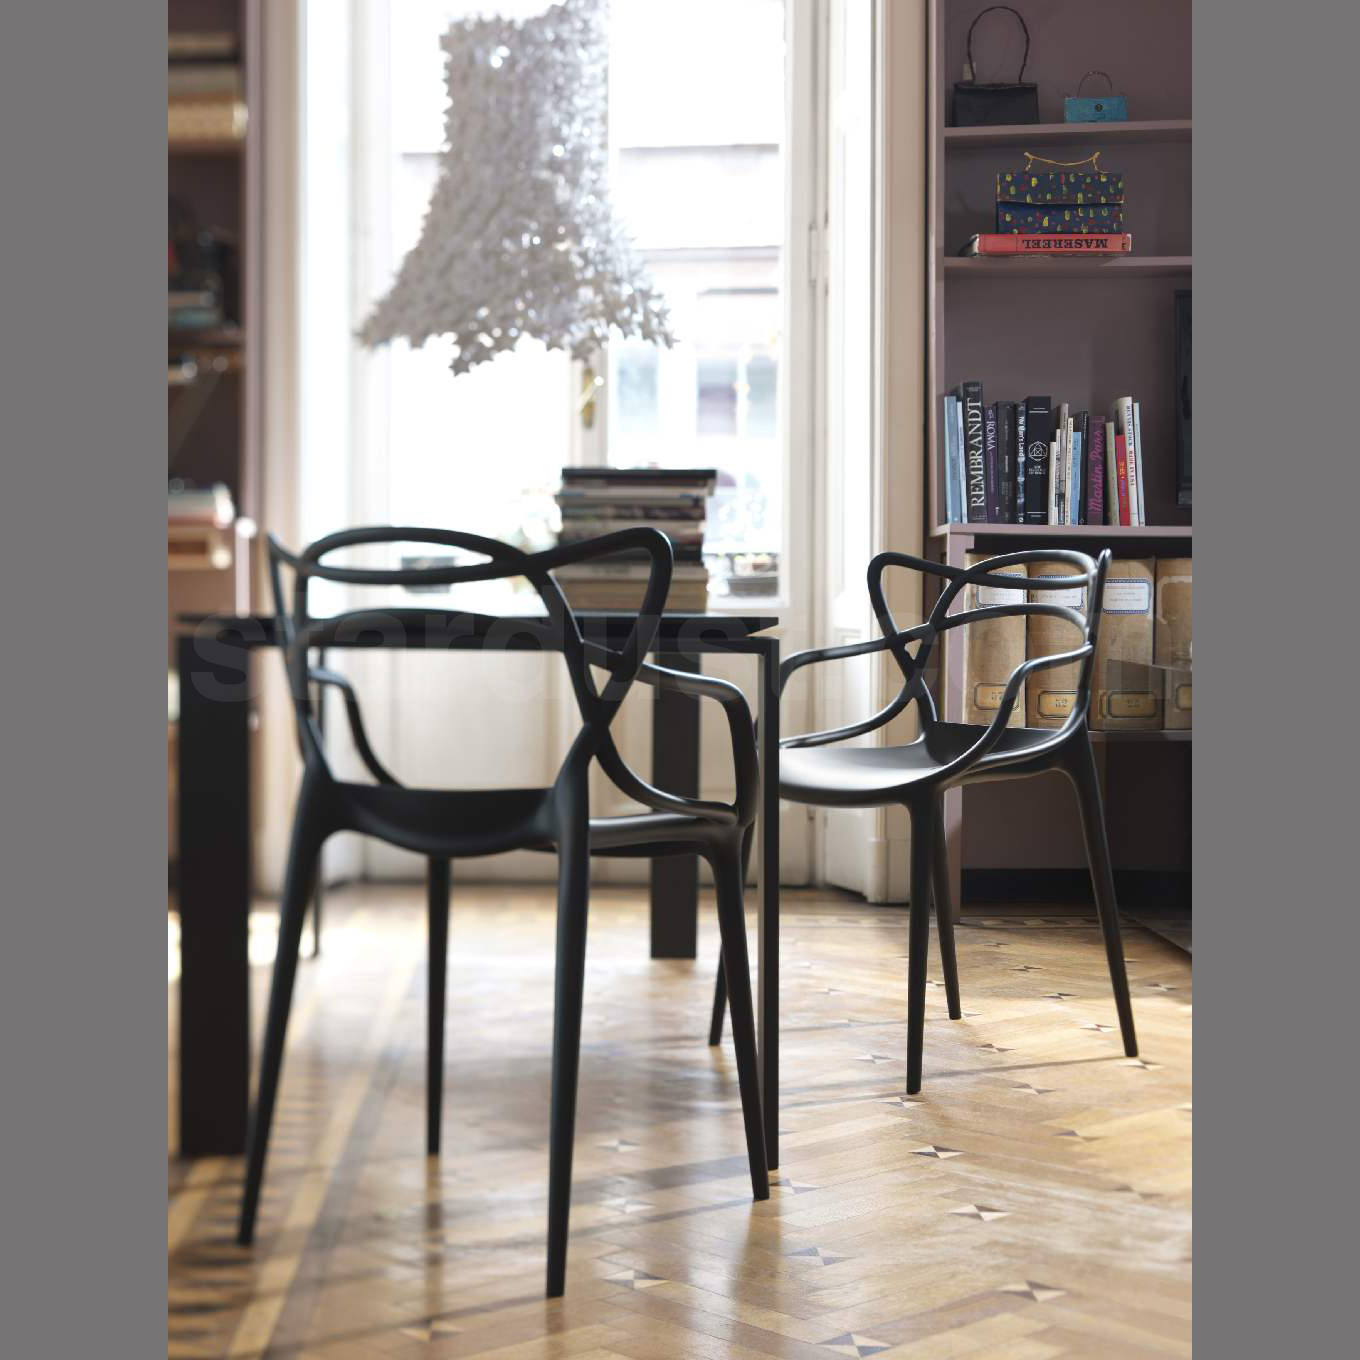 Masters kartell chair for Masters kartell